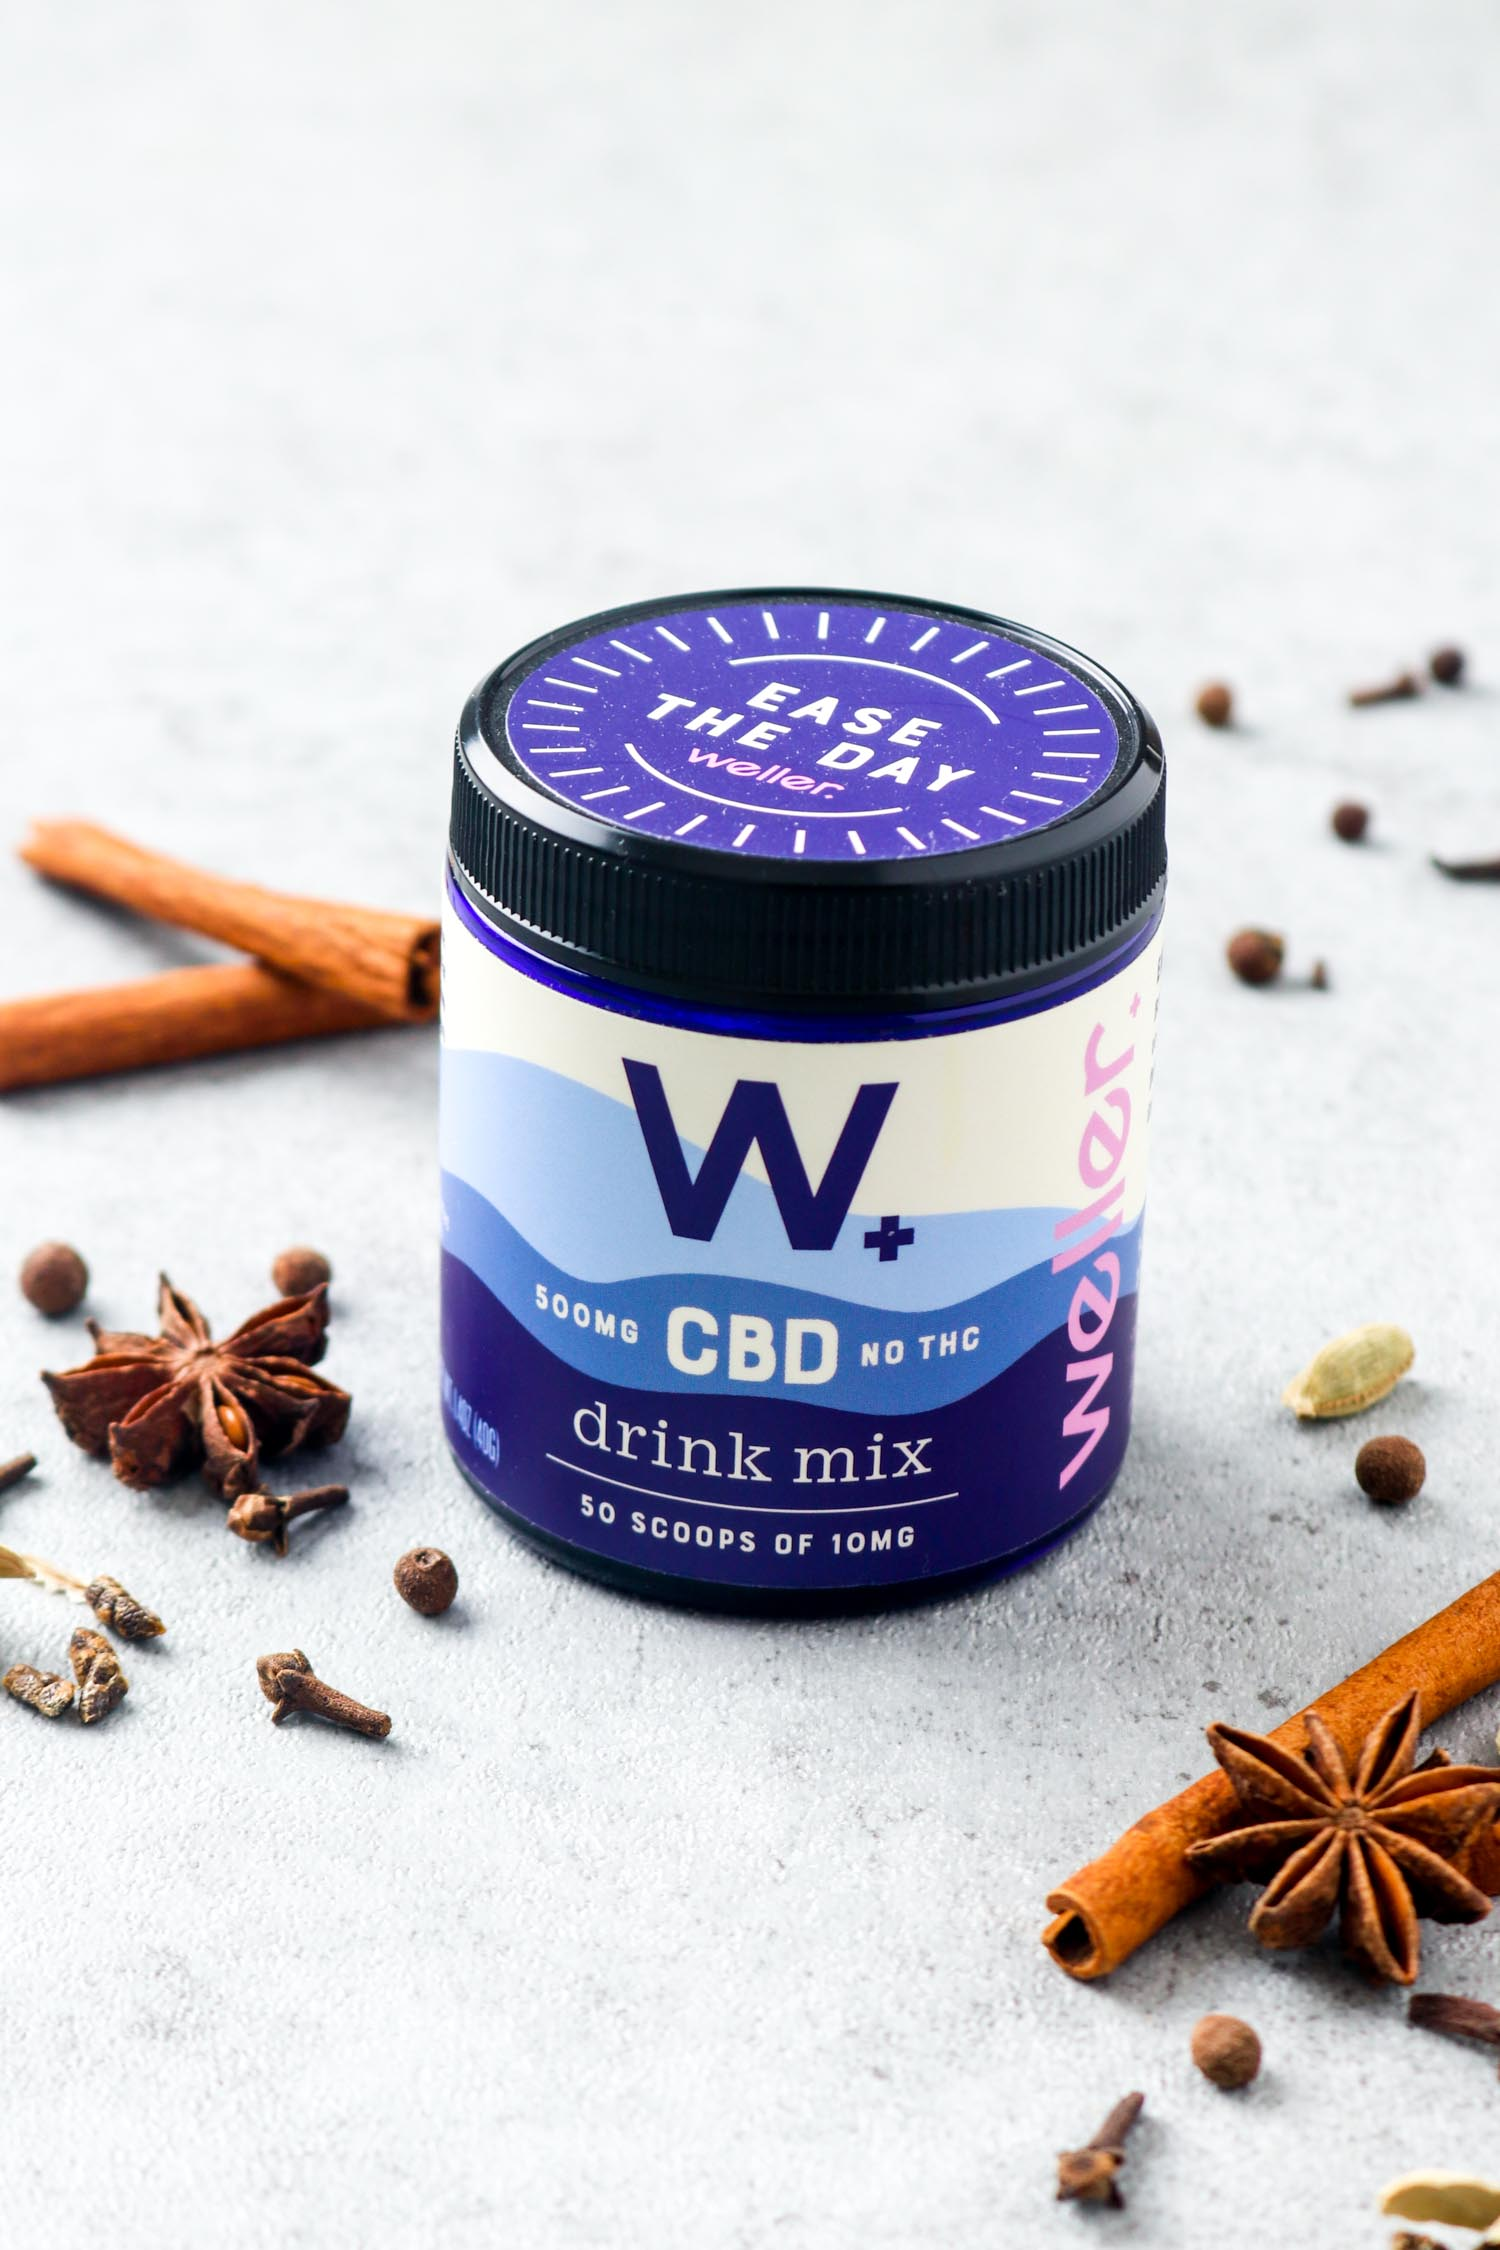 A bottle of Weller CBD drink mix surrounded by chai spices.